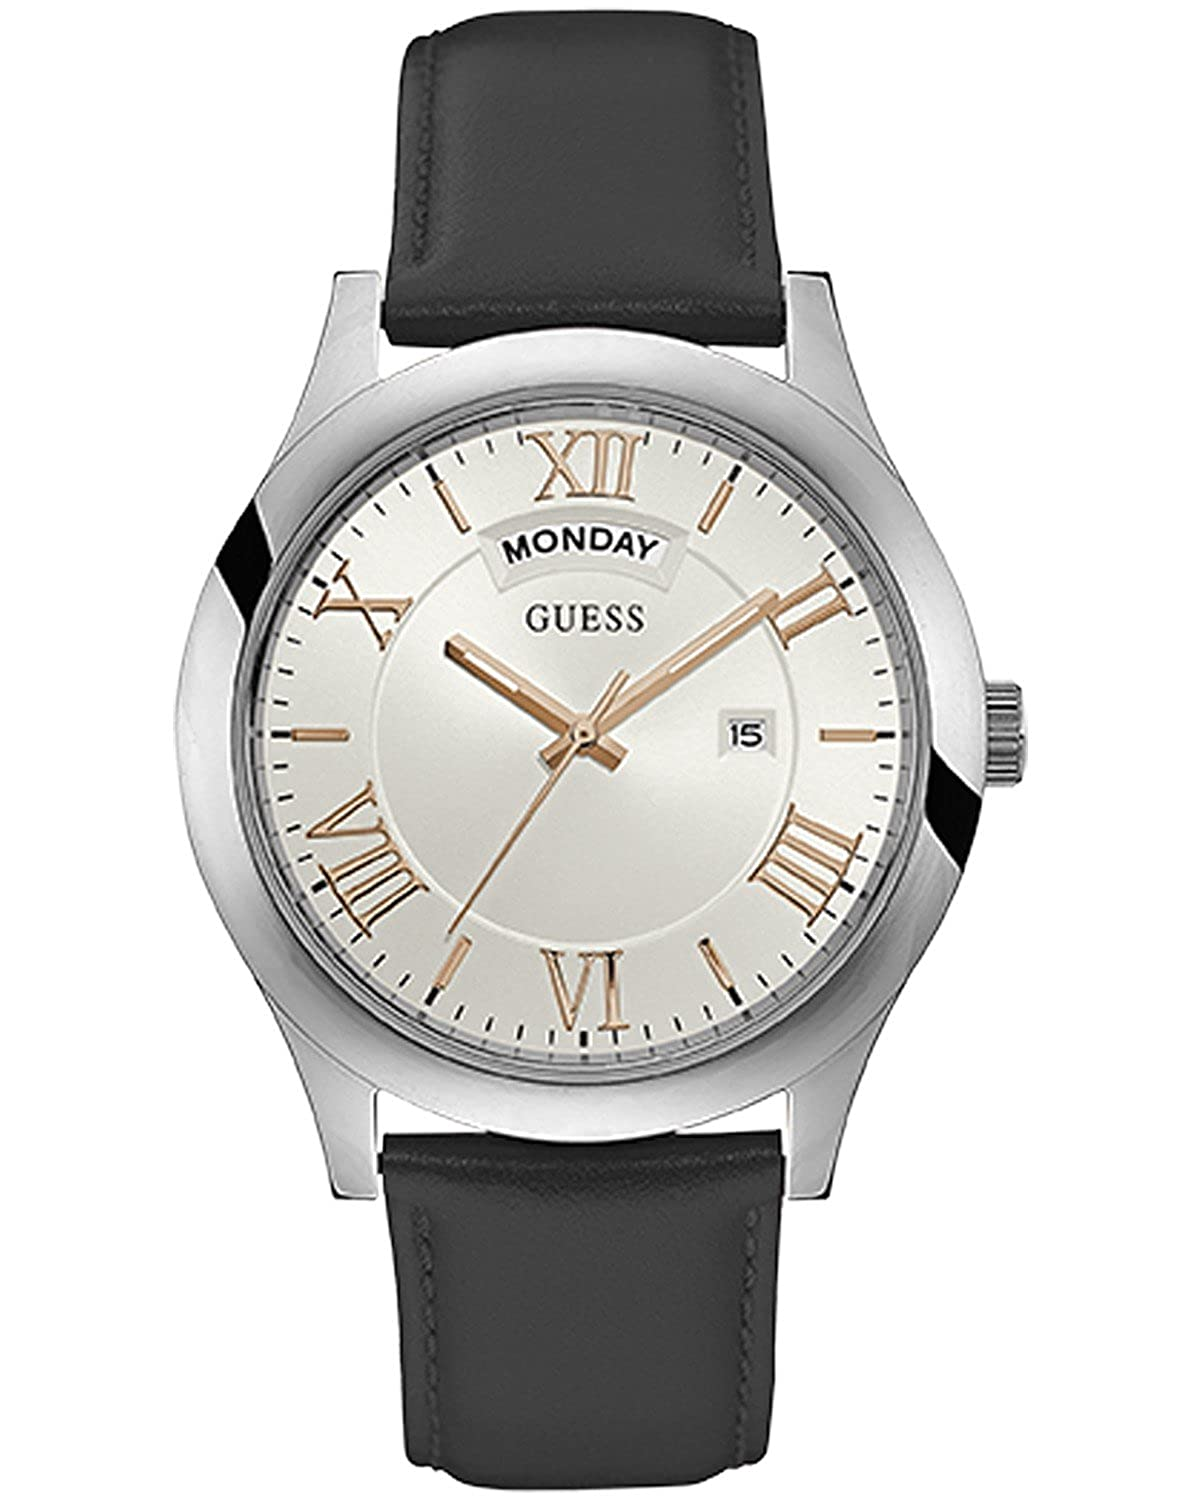 Guess Analog White Dial Best Mens Watches Under 5000 in India to buy in 2019 - Reviews & Buyers Guide